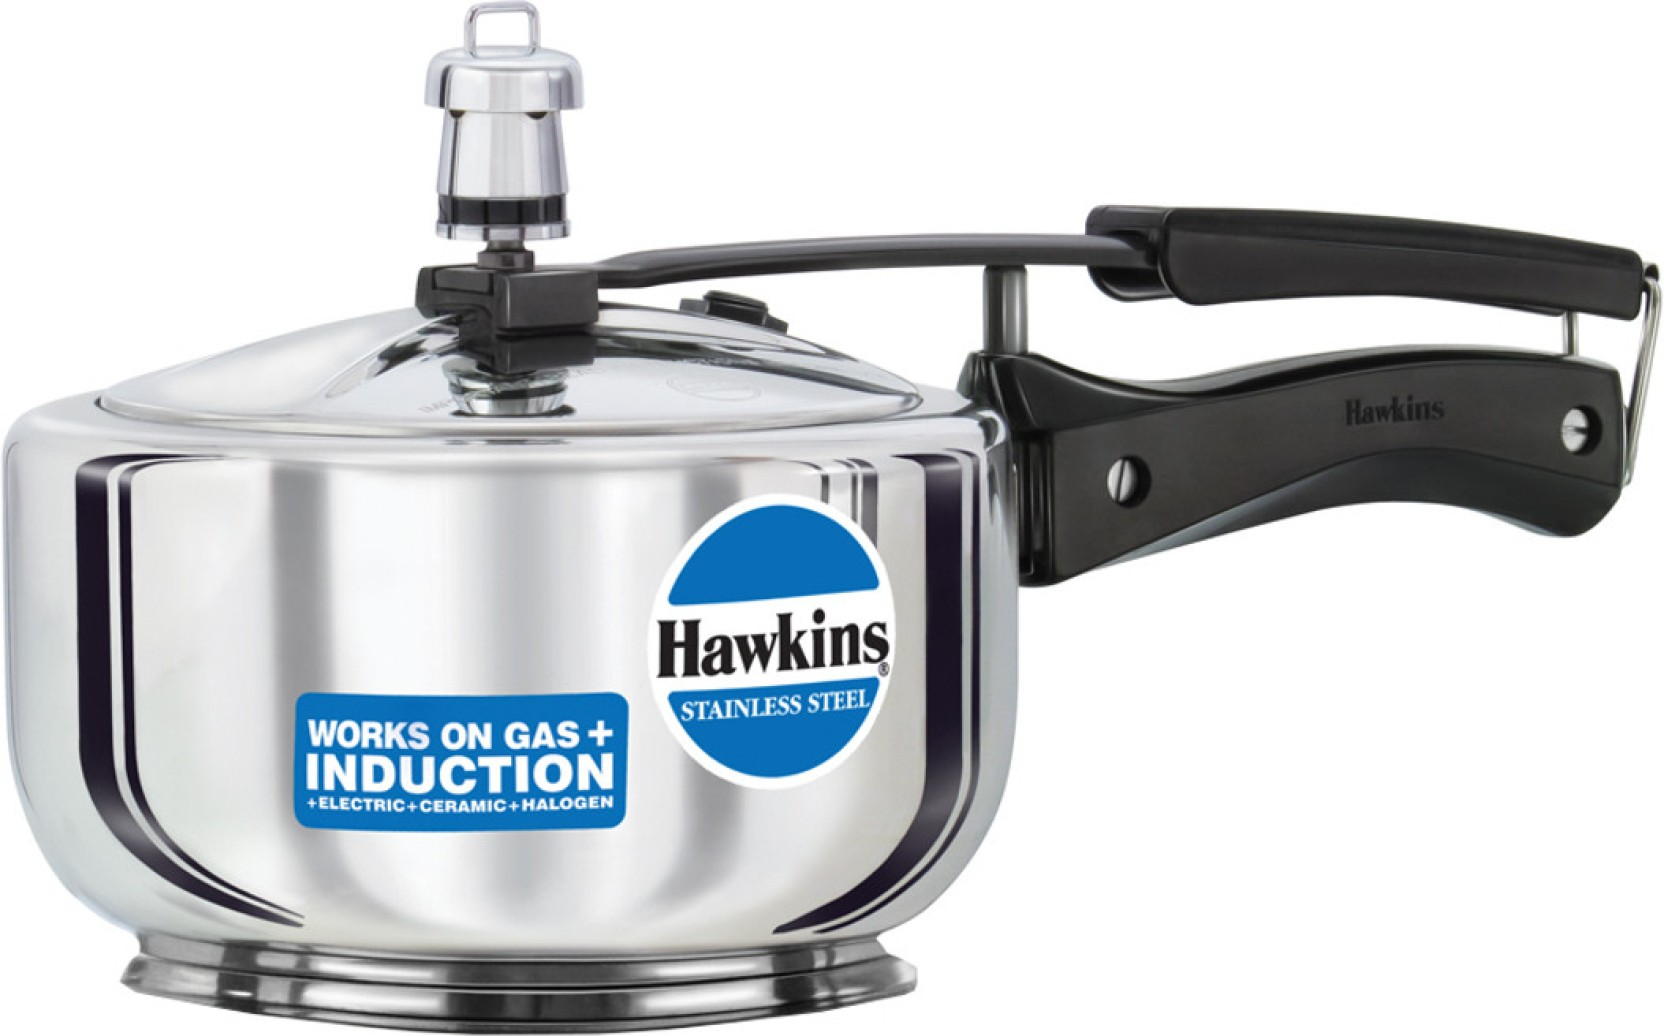 Hawkins Stainless Steel 2 L Pressure Cooker with Induction ...